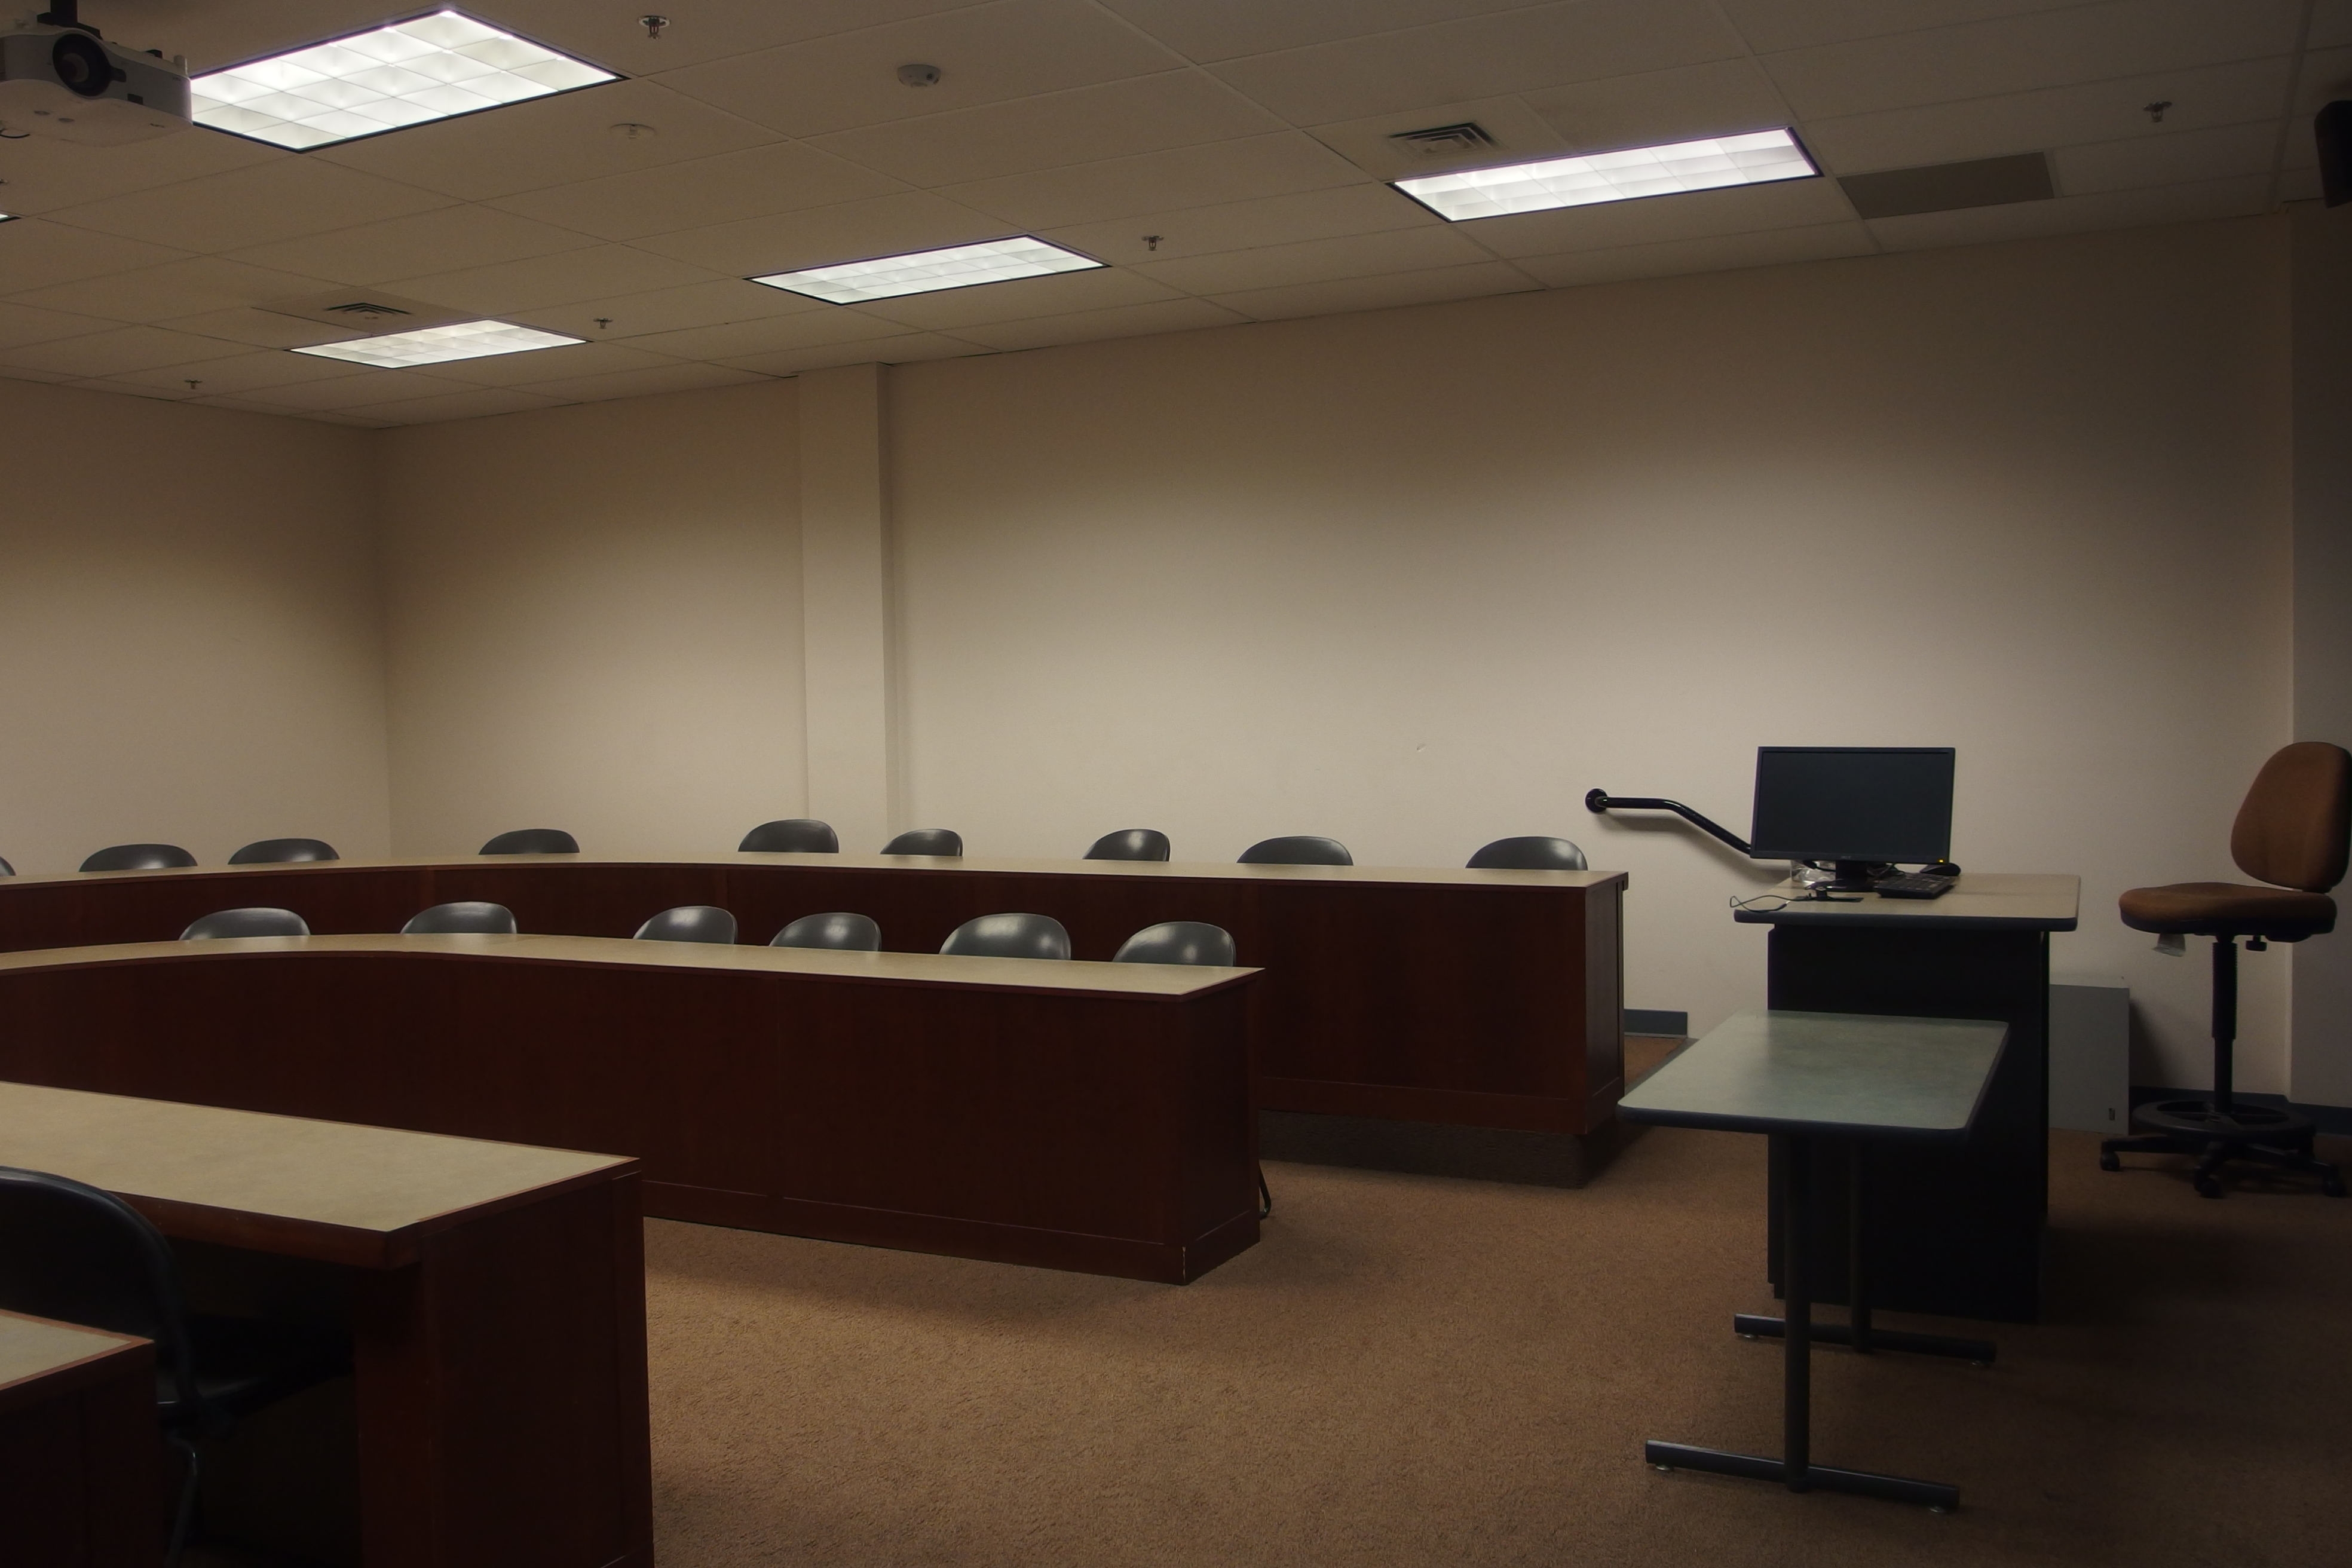 Photo fo the classroom showing the U shape table configuration and the instructor's station